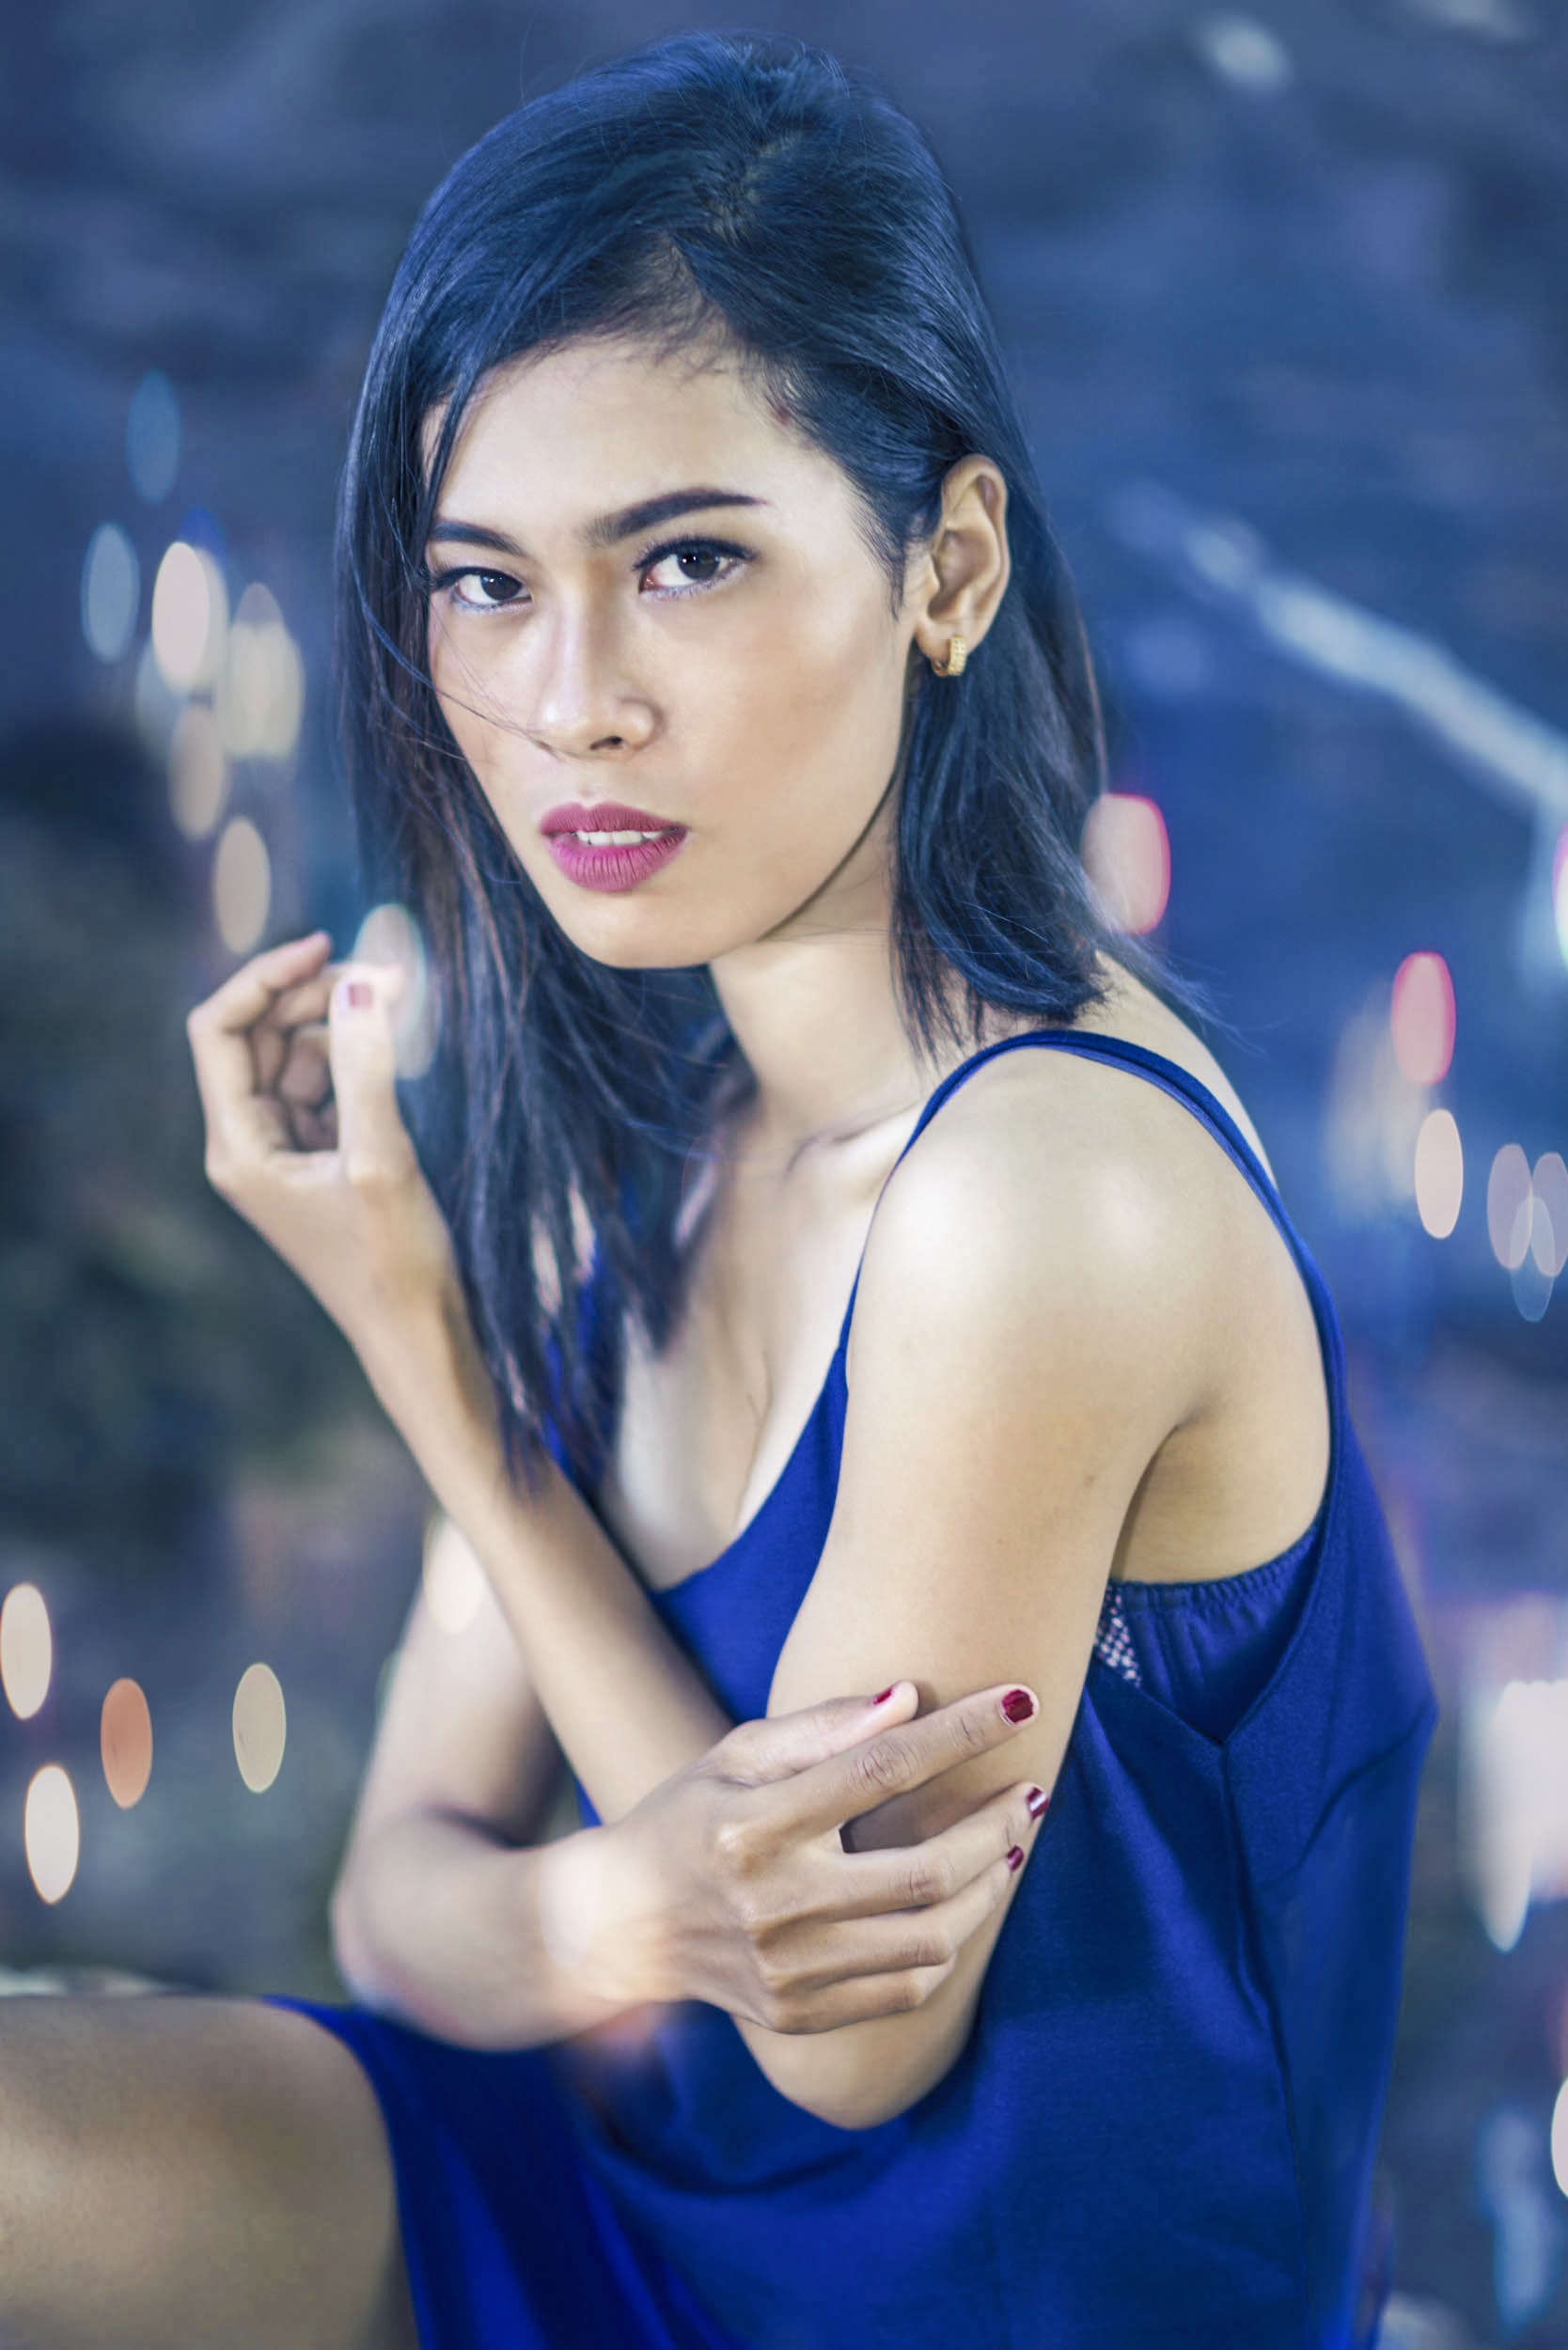 woman in blue spaghetti strap top bokeh photography